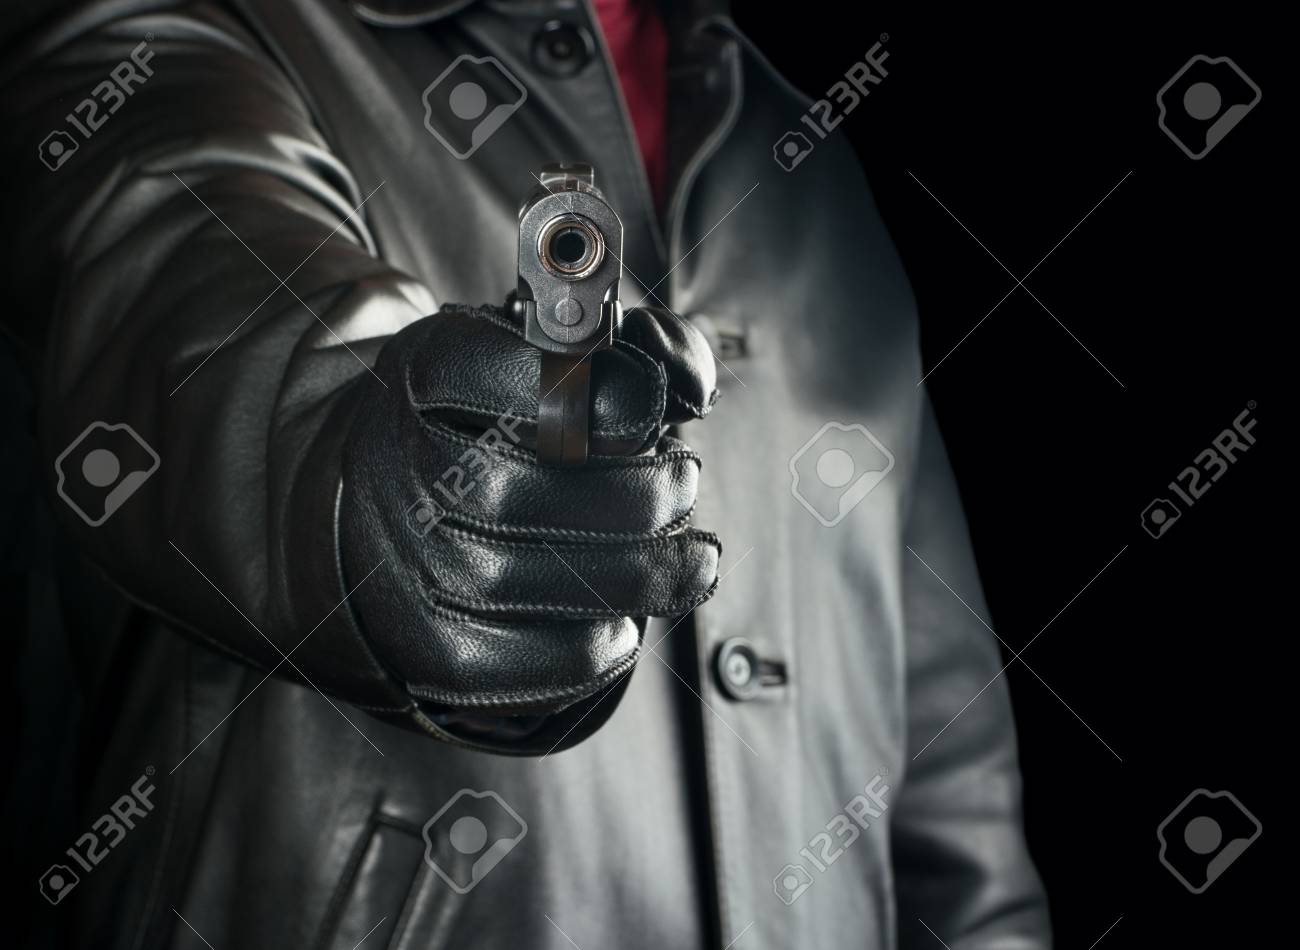 Bandit Directs Gun On Black Background Closeup Stock Photo 1300x950